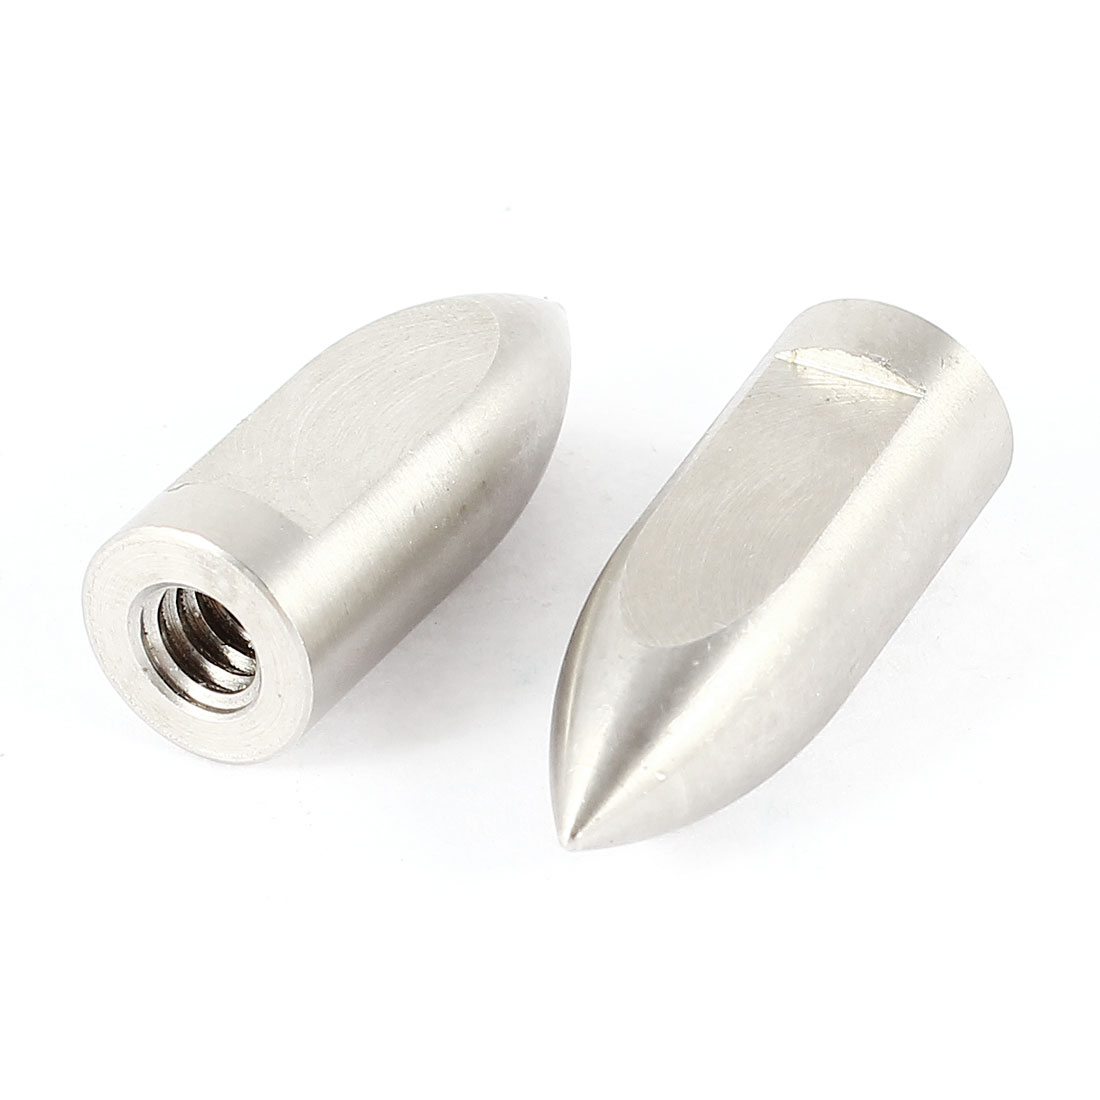 2PCS 9mm x 23mm Flexshaft Prop Nut for 4.76mm Shaft Brushless Electric Boats